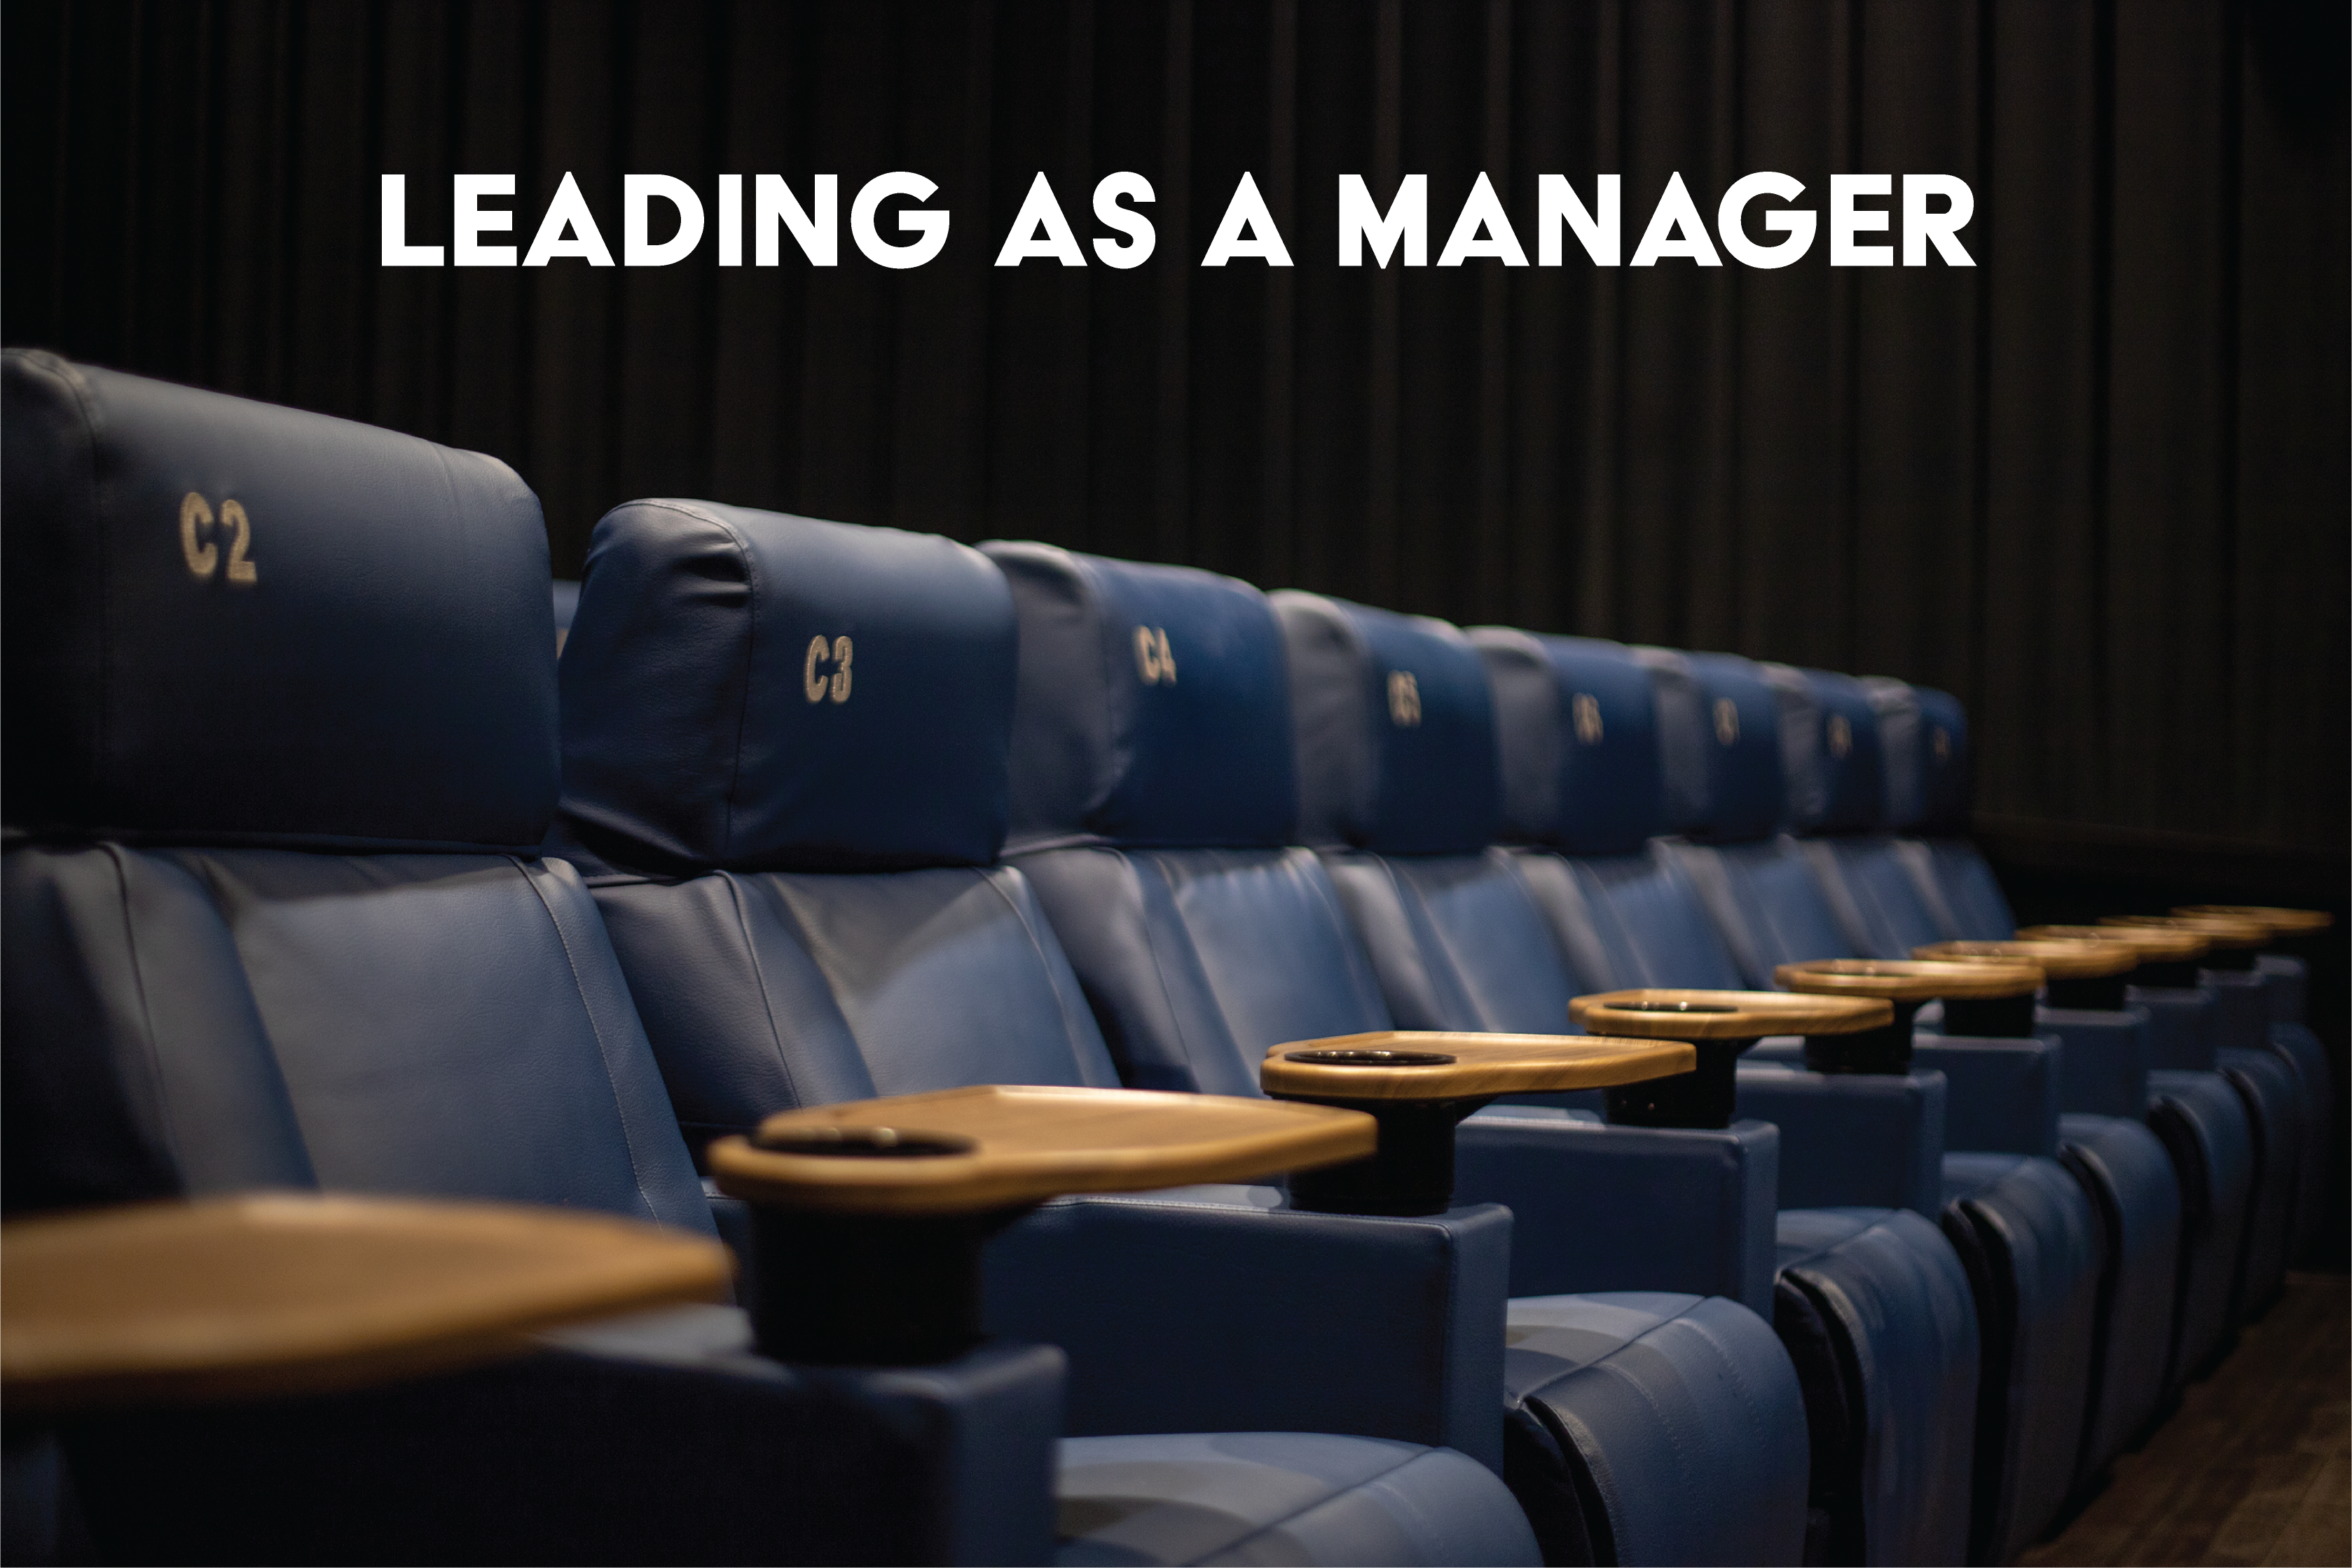 Leading as a Manager